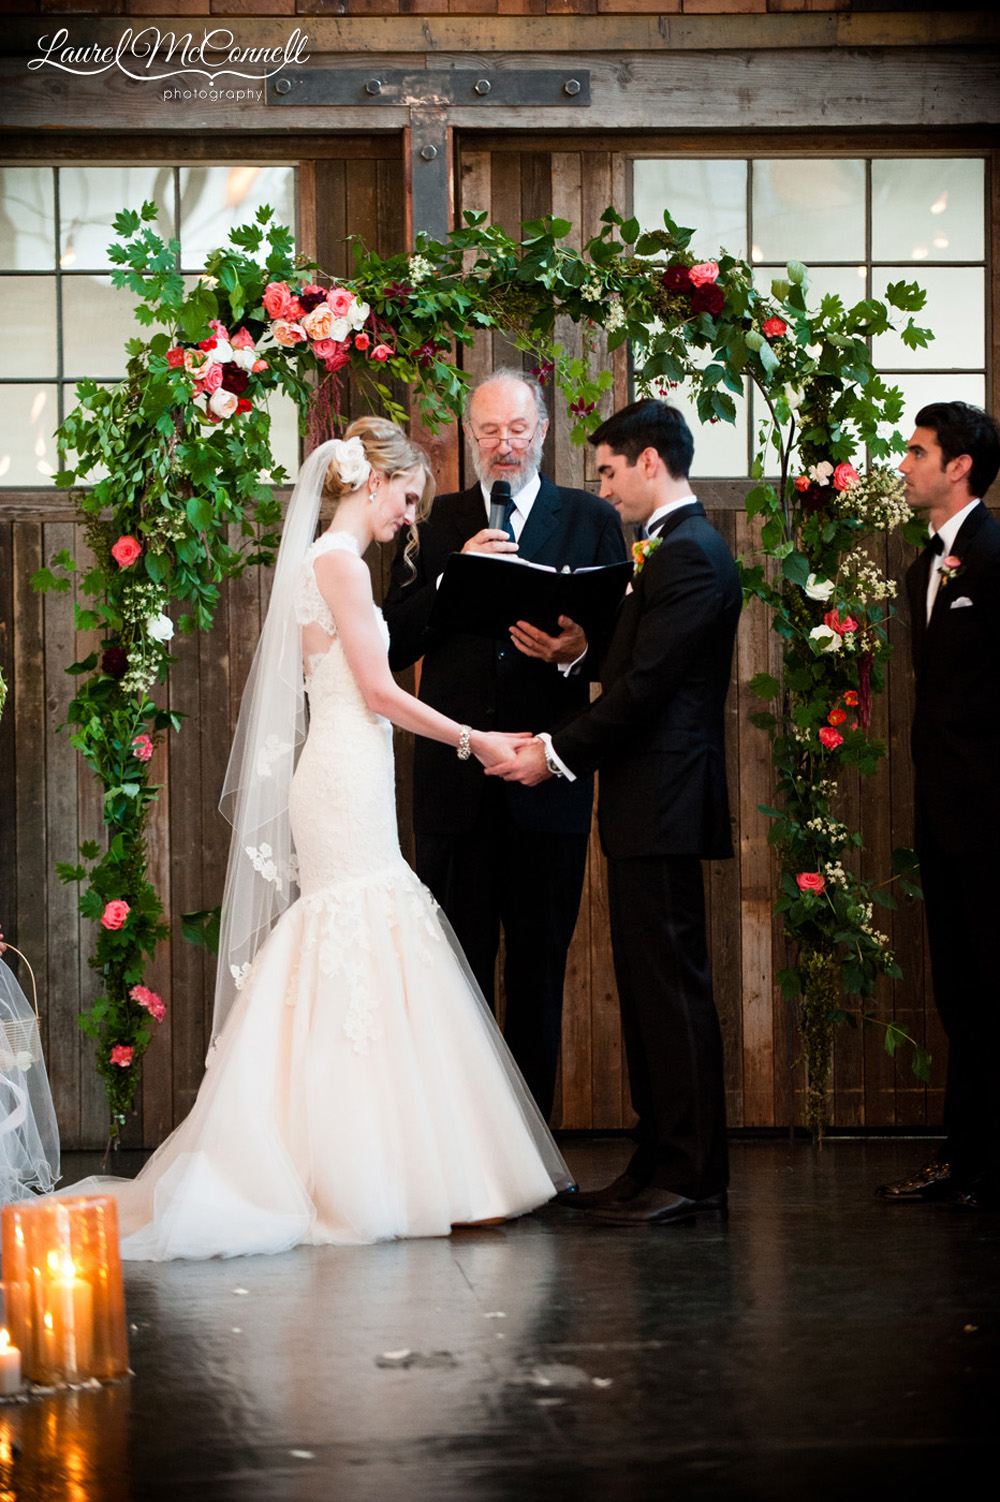 Beautiful wedding ceremony under floral archway at Seattle's Sodo Park.